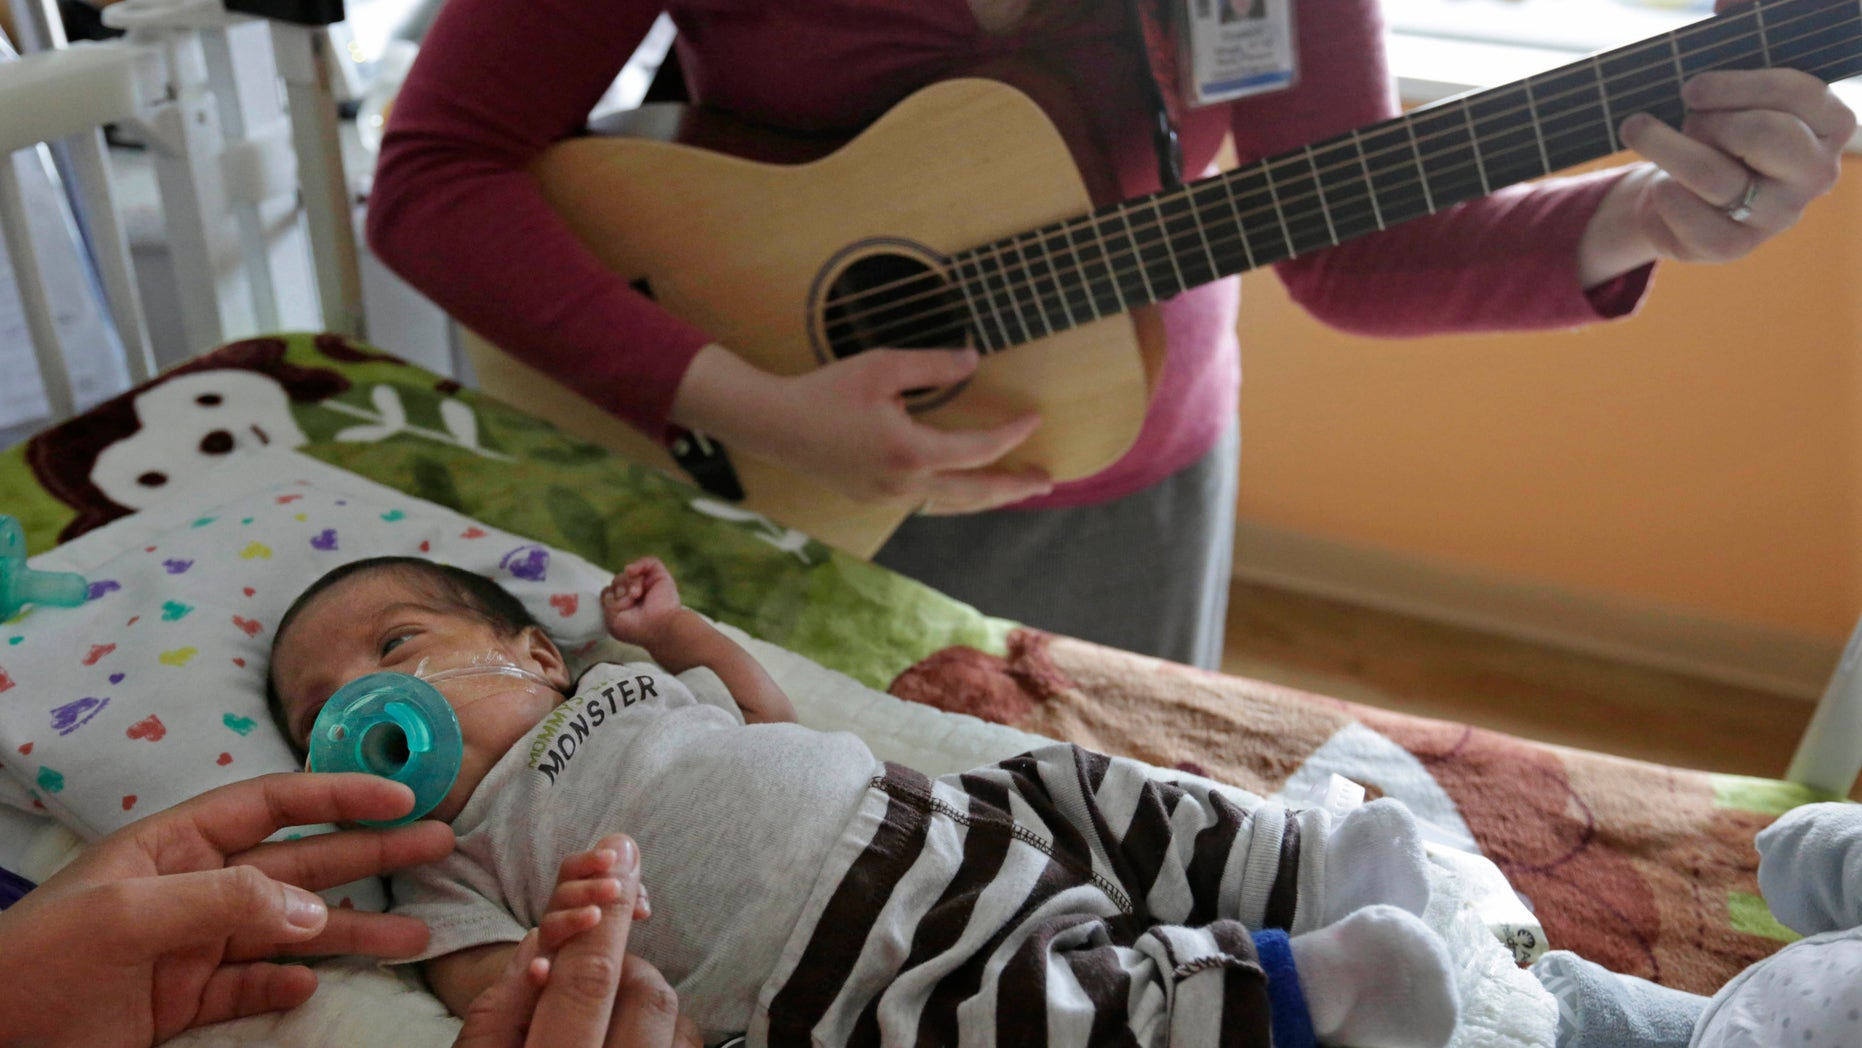 Music therapist Elizabeth Klinger, right, quietly plays guitar and sings for Augustin as he grips the hand of his mother, Lucy Morales, in the newborn intensive care unit at Ann & Robert H. Lurie Children's Hospital in Chicago.